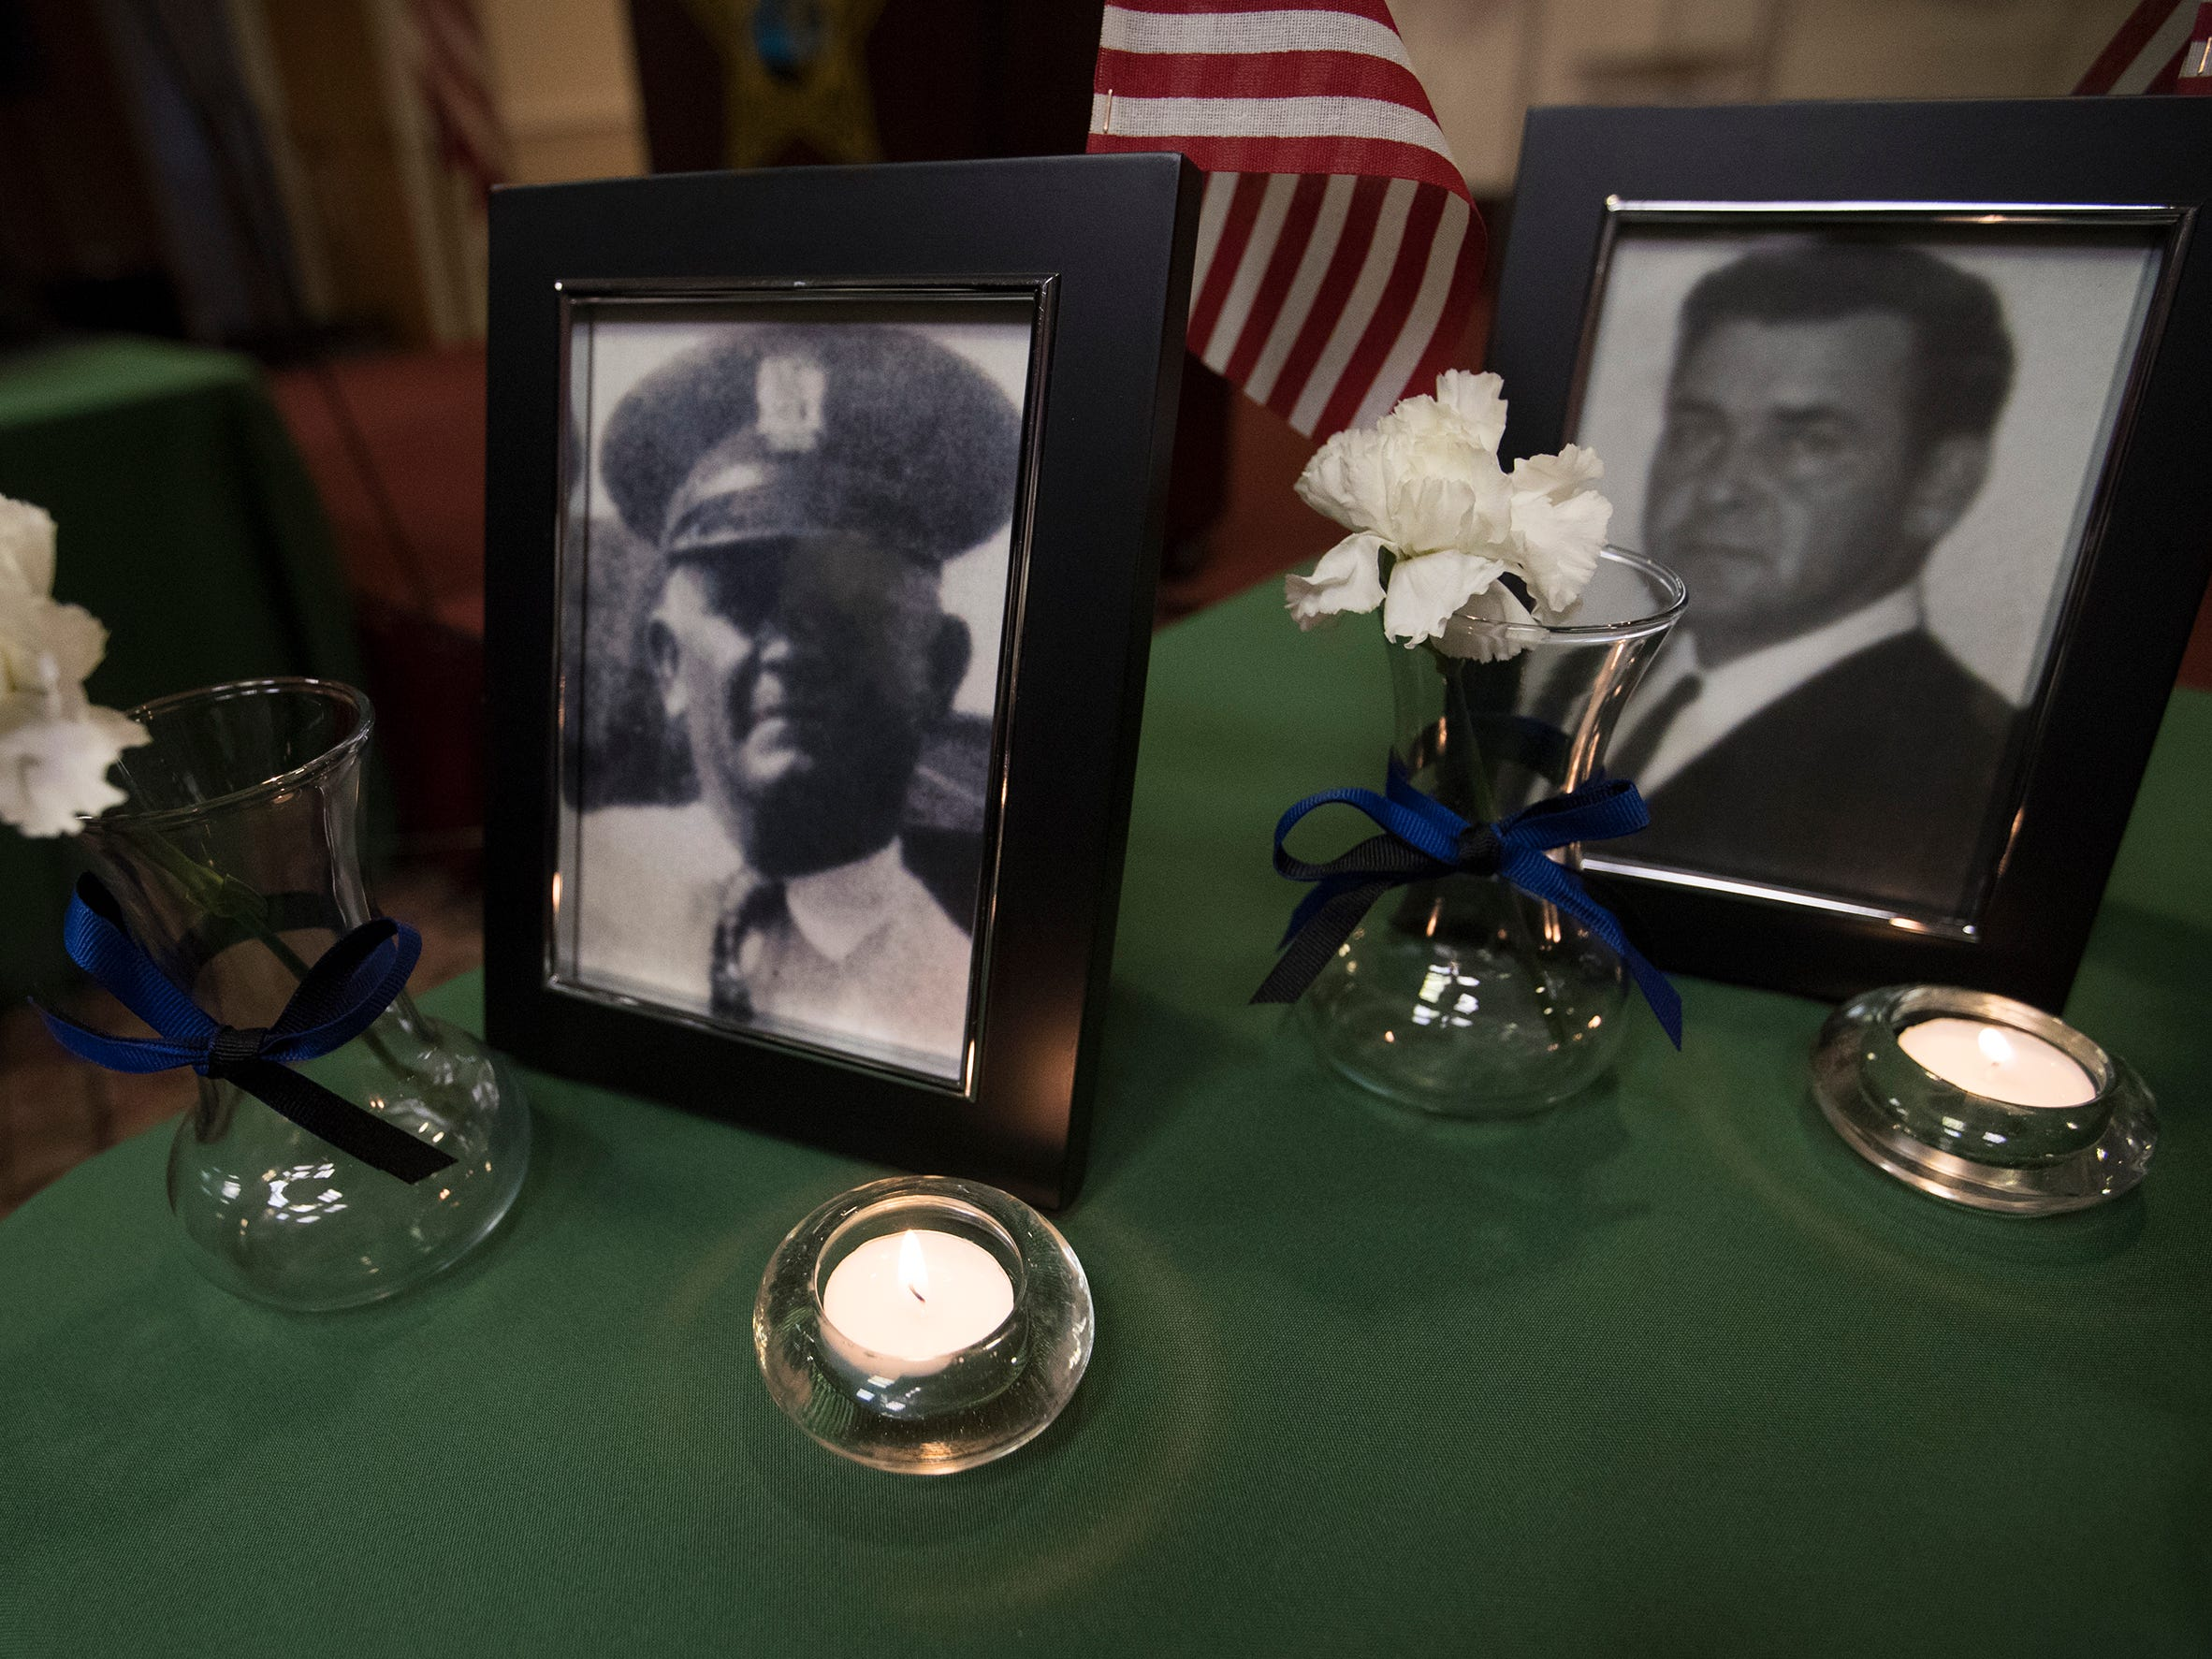 Deputy William E. Hutto, left, and Deputy Maurice Eugene Anglin, were among the local law enforcement officers killed in the line of duty, that were honored at a memorial on Wednesday at East Naples United Methodist Church. Thirteen officers have been killed in Collier County since 1928.